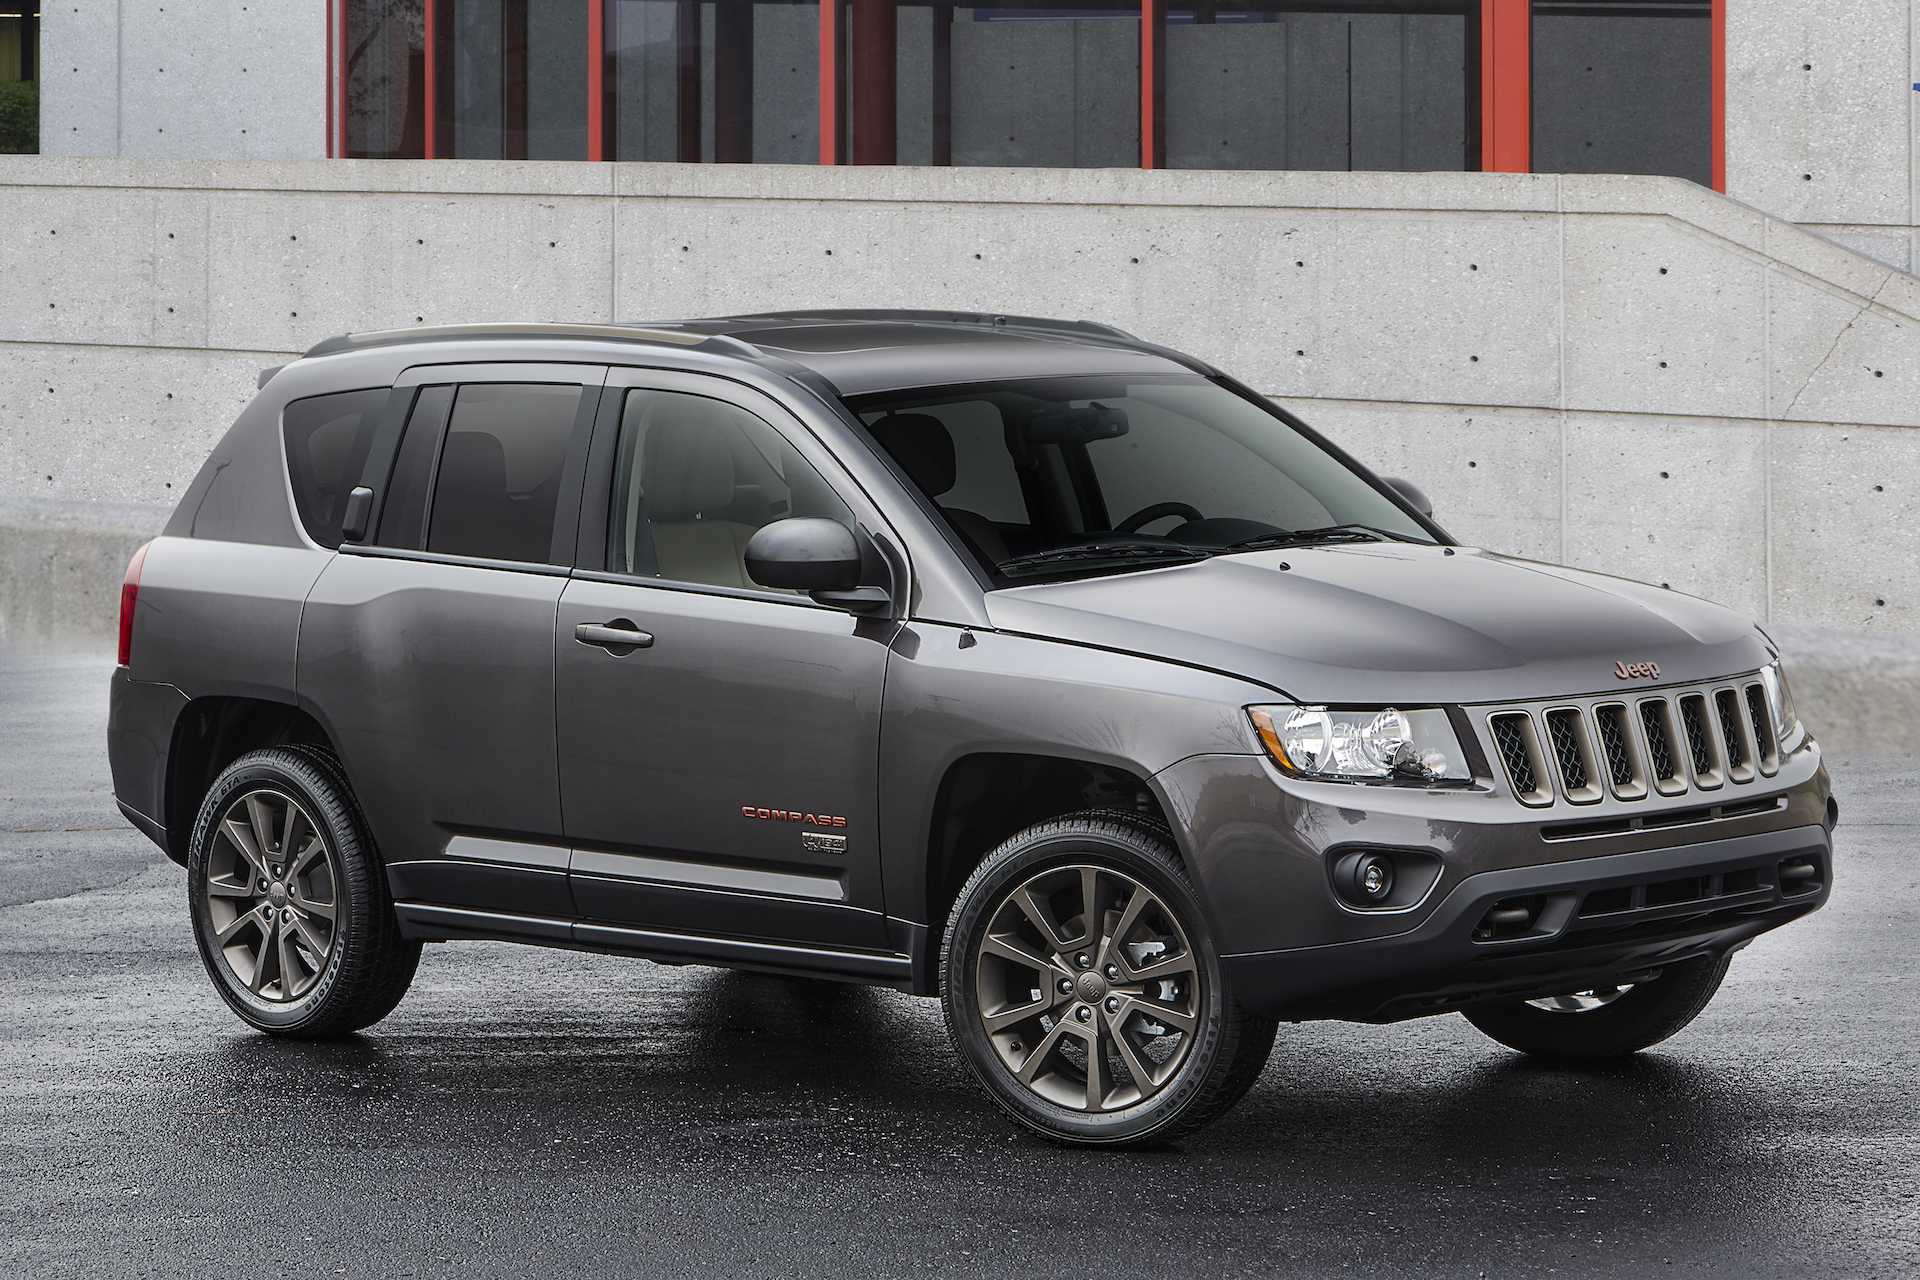 Lexus Of Atlanta >> 2017 Jeep Compass Review, Ratings, Specs, Prices, and Photos - The Car Connection